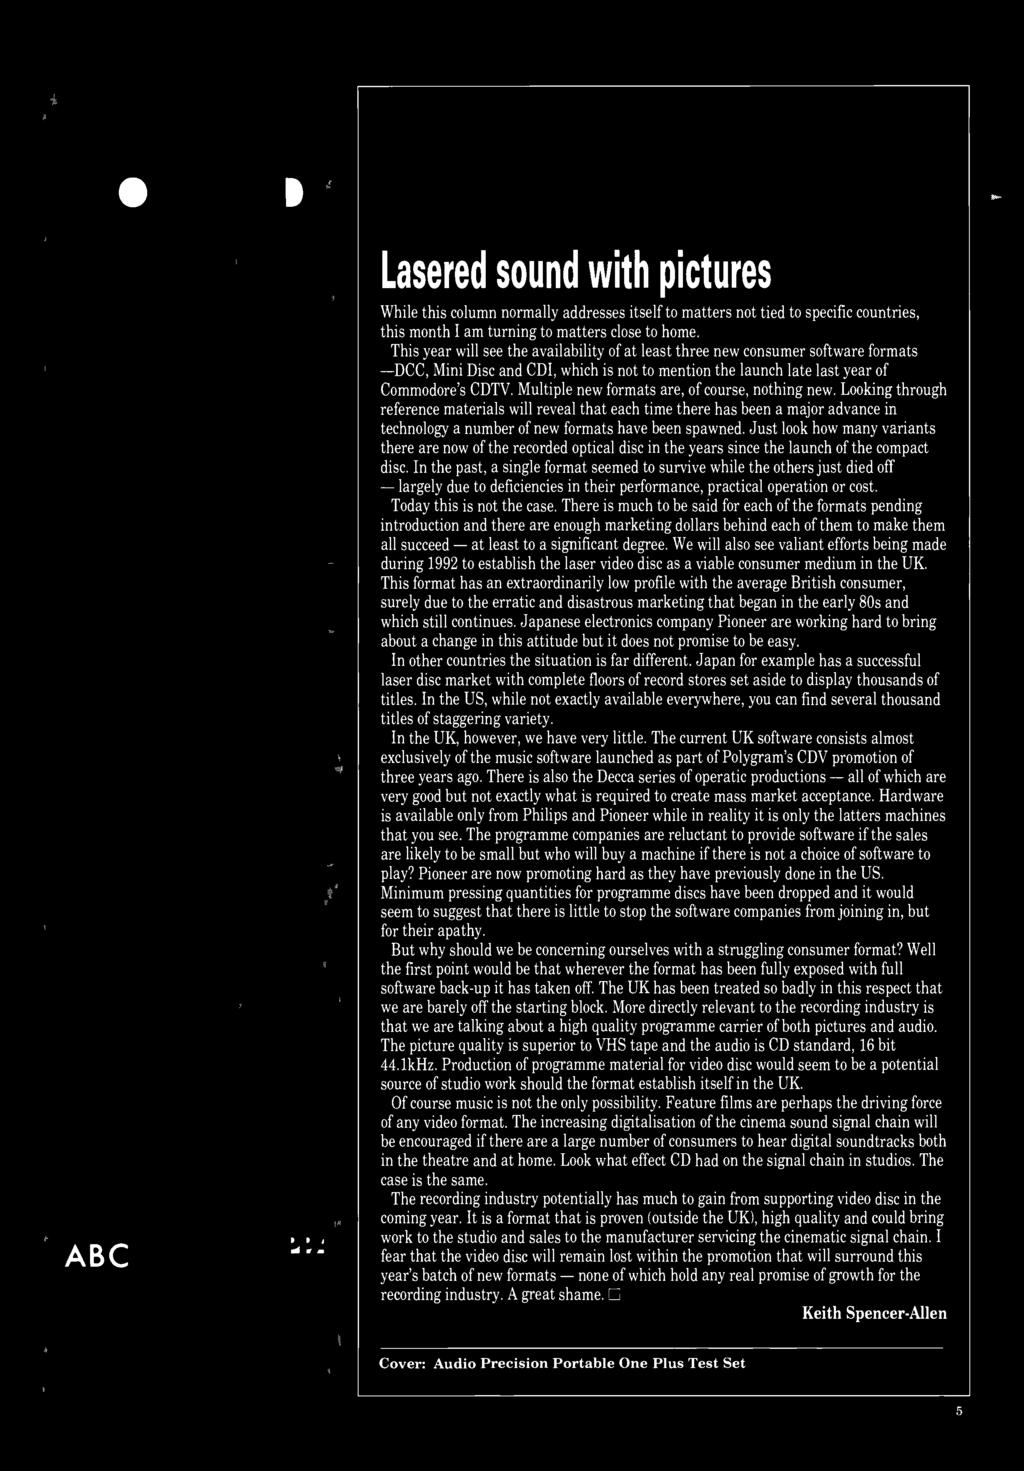 Studio Sound And Broadcast Engineering Instruoaent Mode Output 74 Erie Diaphragm Control Board Witing Pre Evertech 5button Metered Francis Rumsey Dave Foister Zenon Schoepe Yasmin Hashmi Patrick Stapley Advertisements Executive Ad Manager Steve